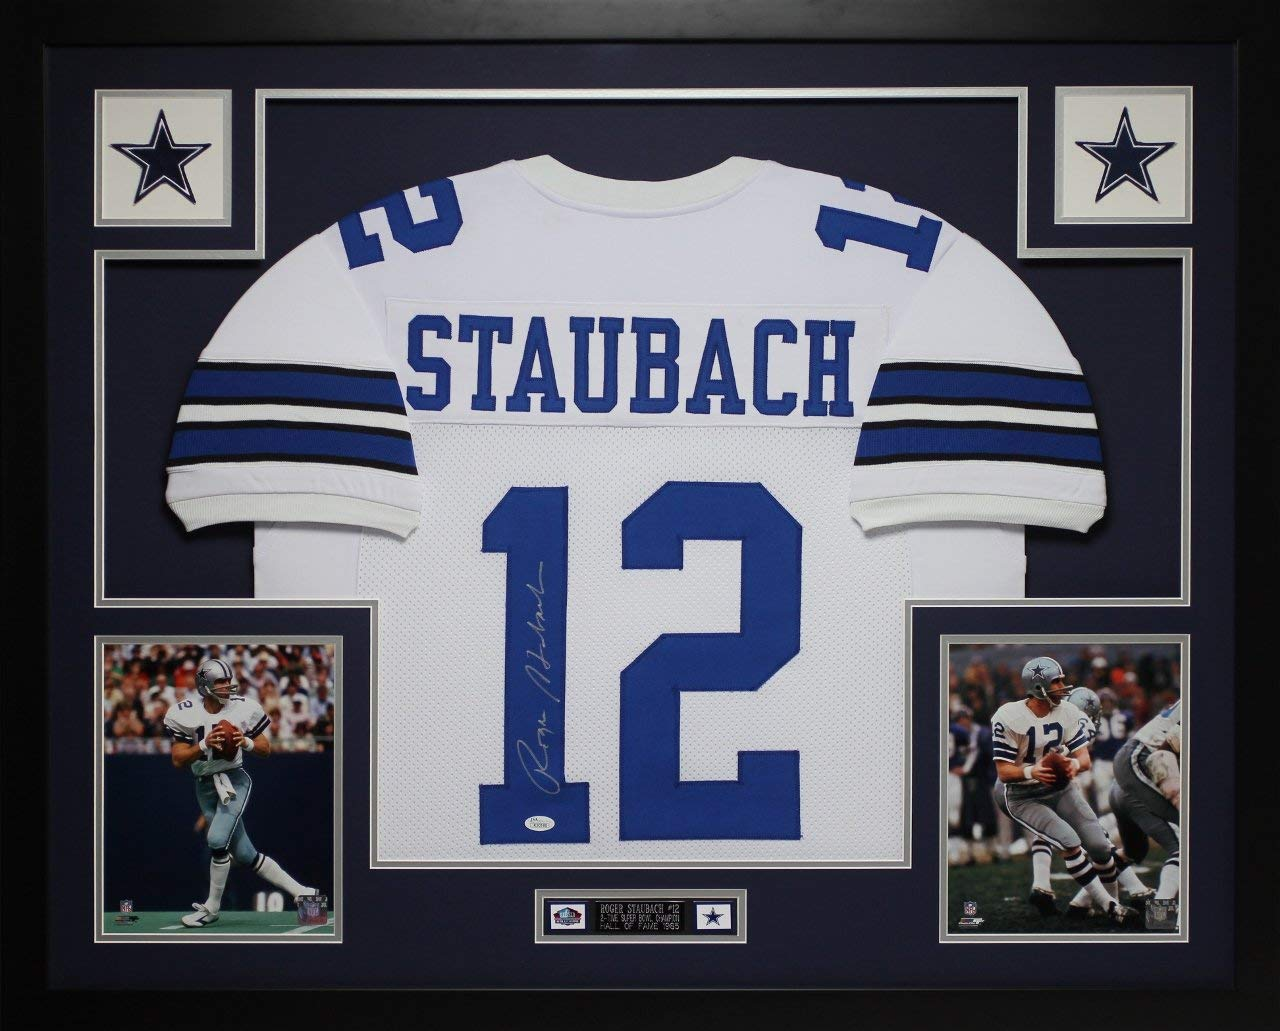 30a9474de Get Quotations · Roger Staubach Autographed White Cowboys Jersey -  Beautifully Matted and Framed - Hand Signed By Roger